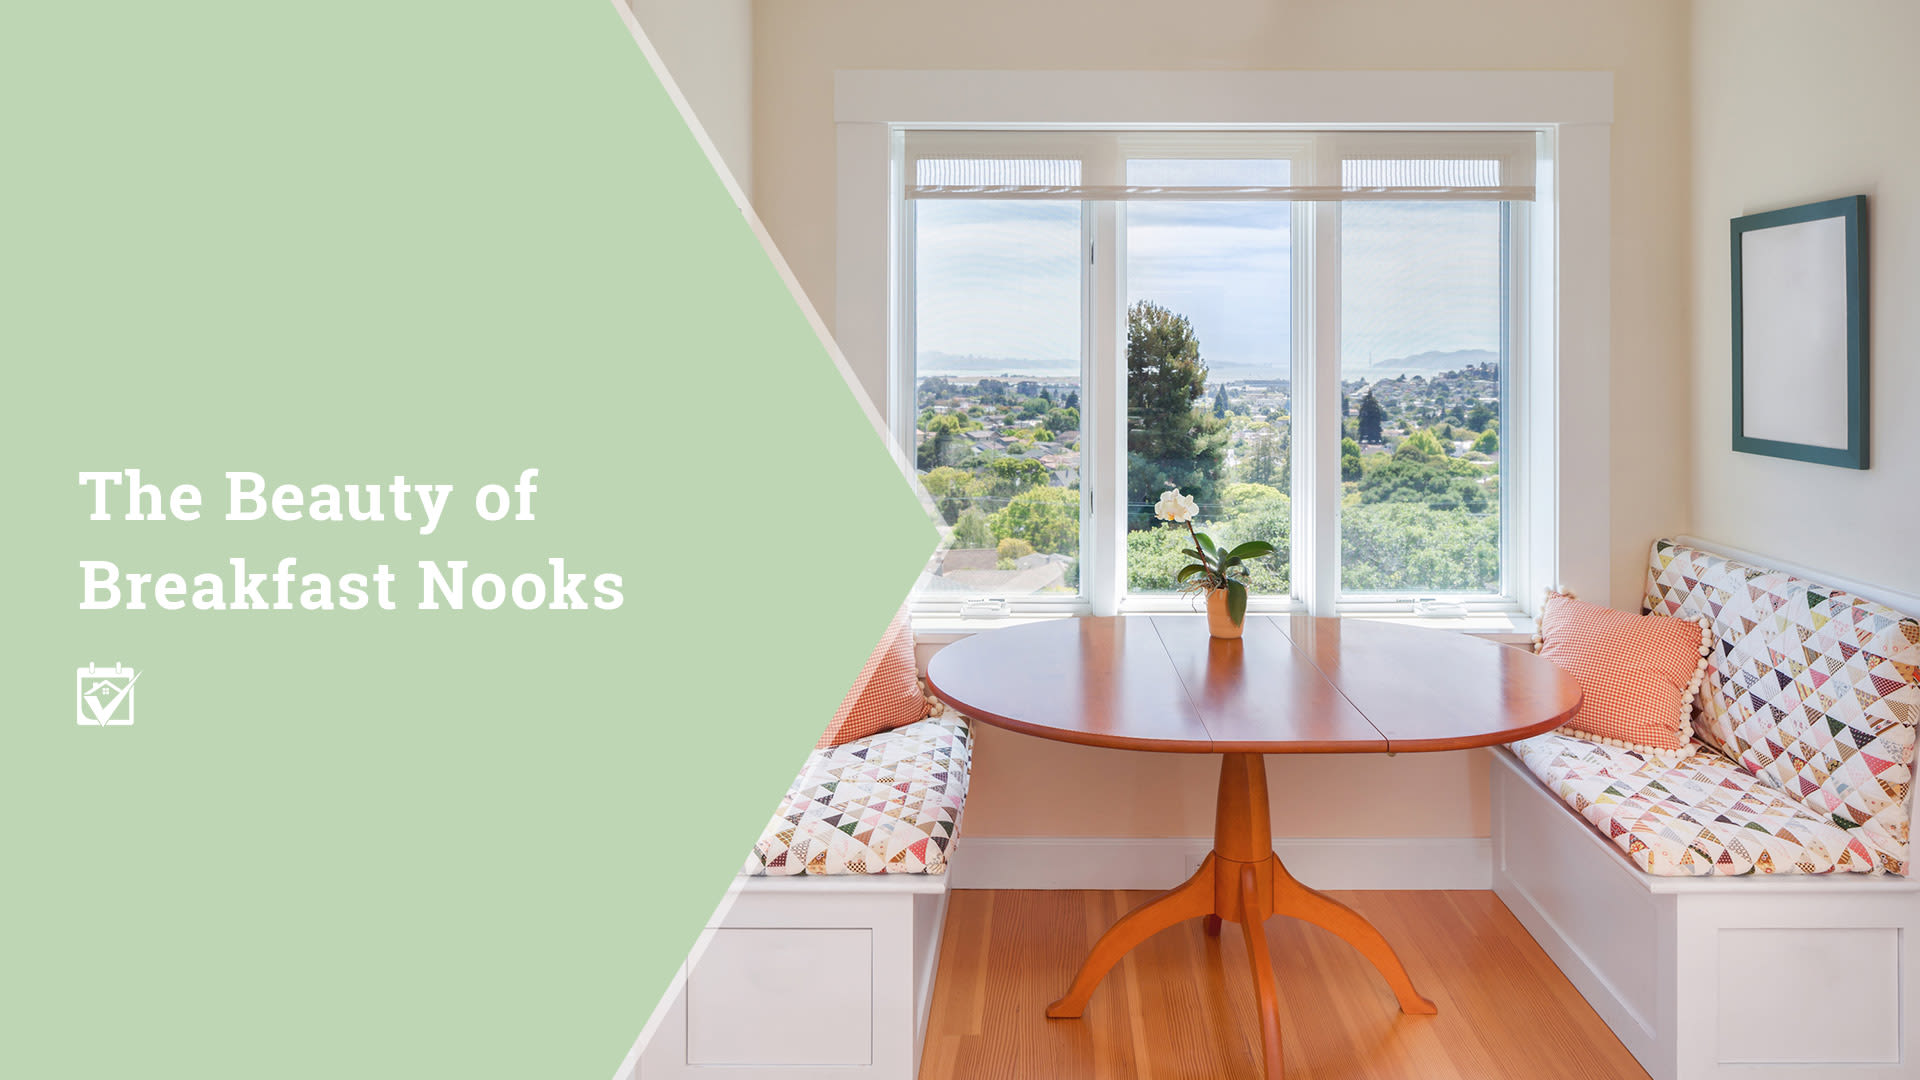 The Beauty of the Breakfast Nook